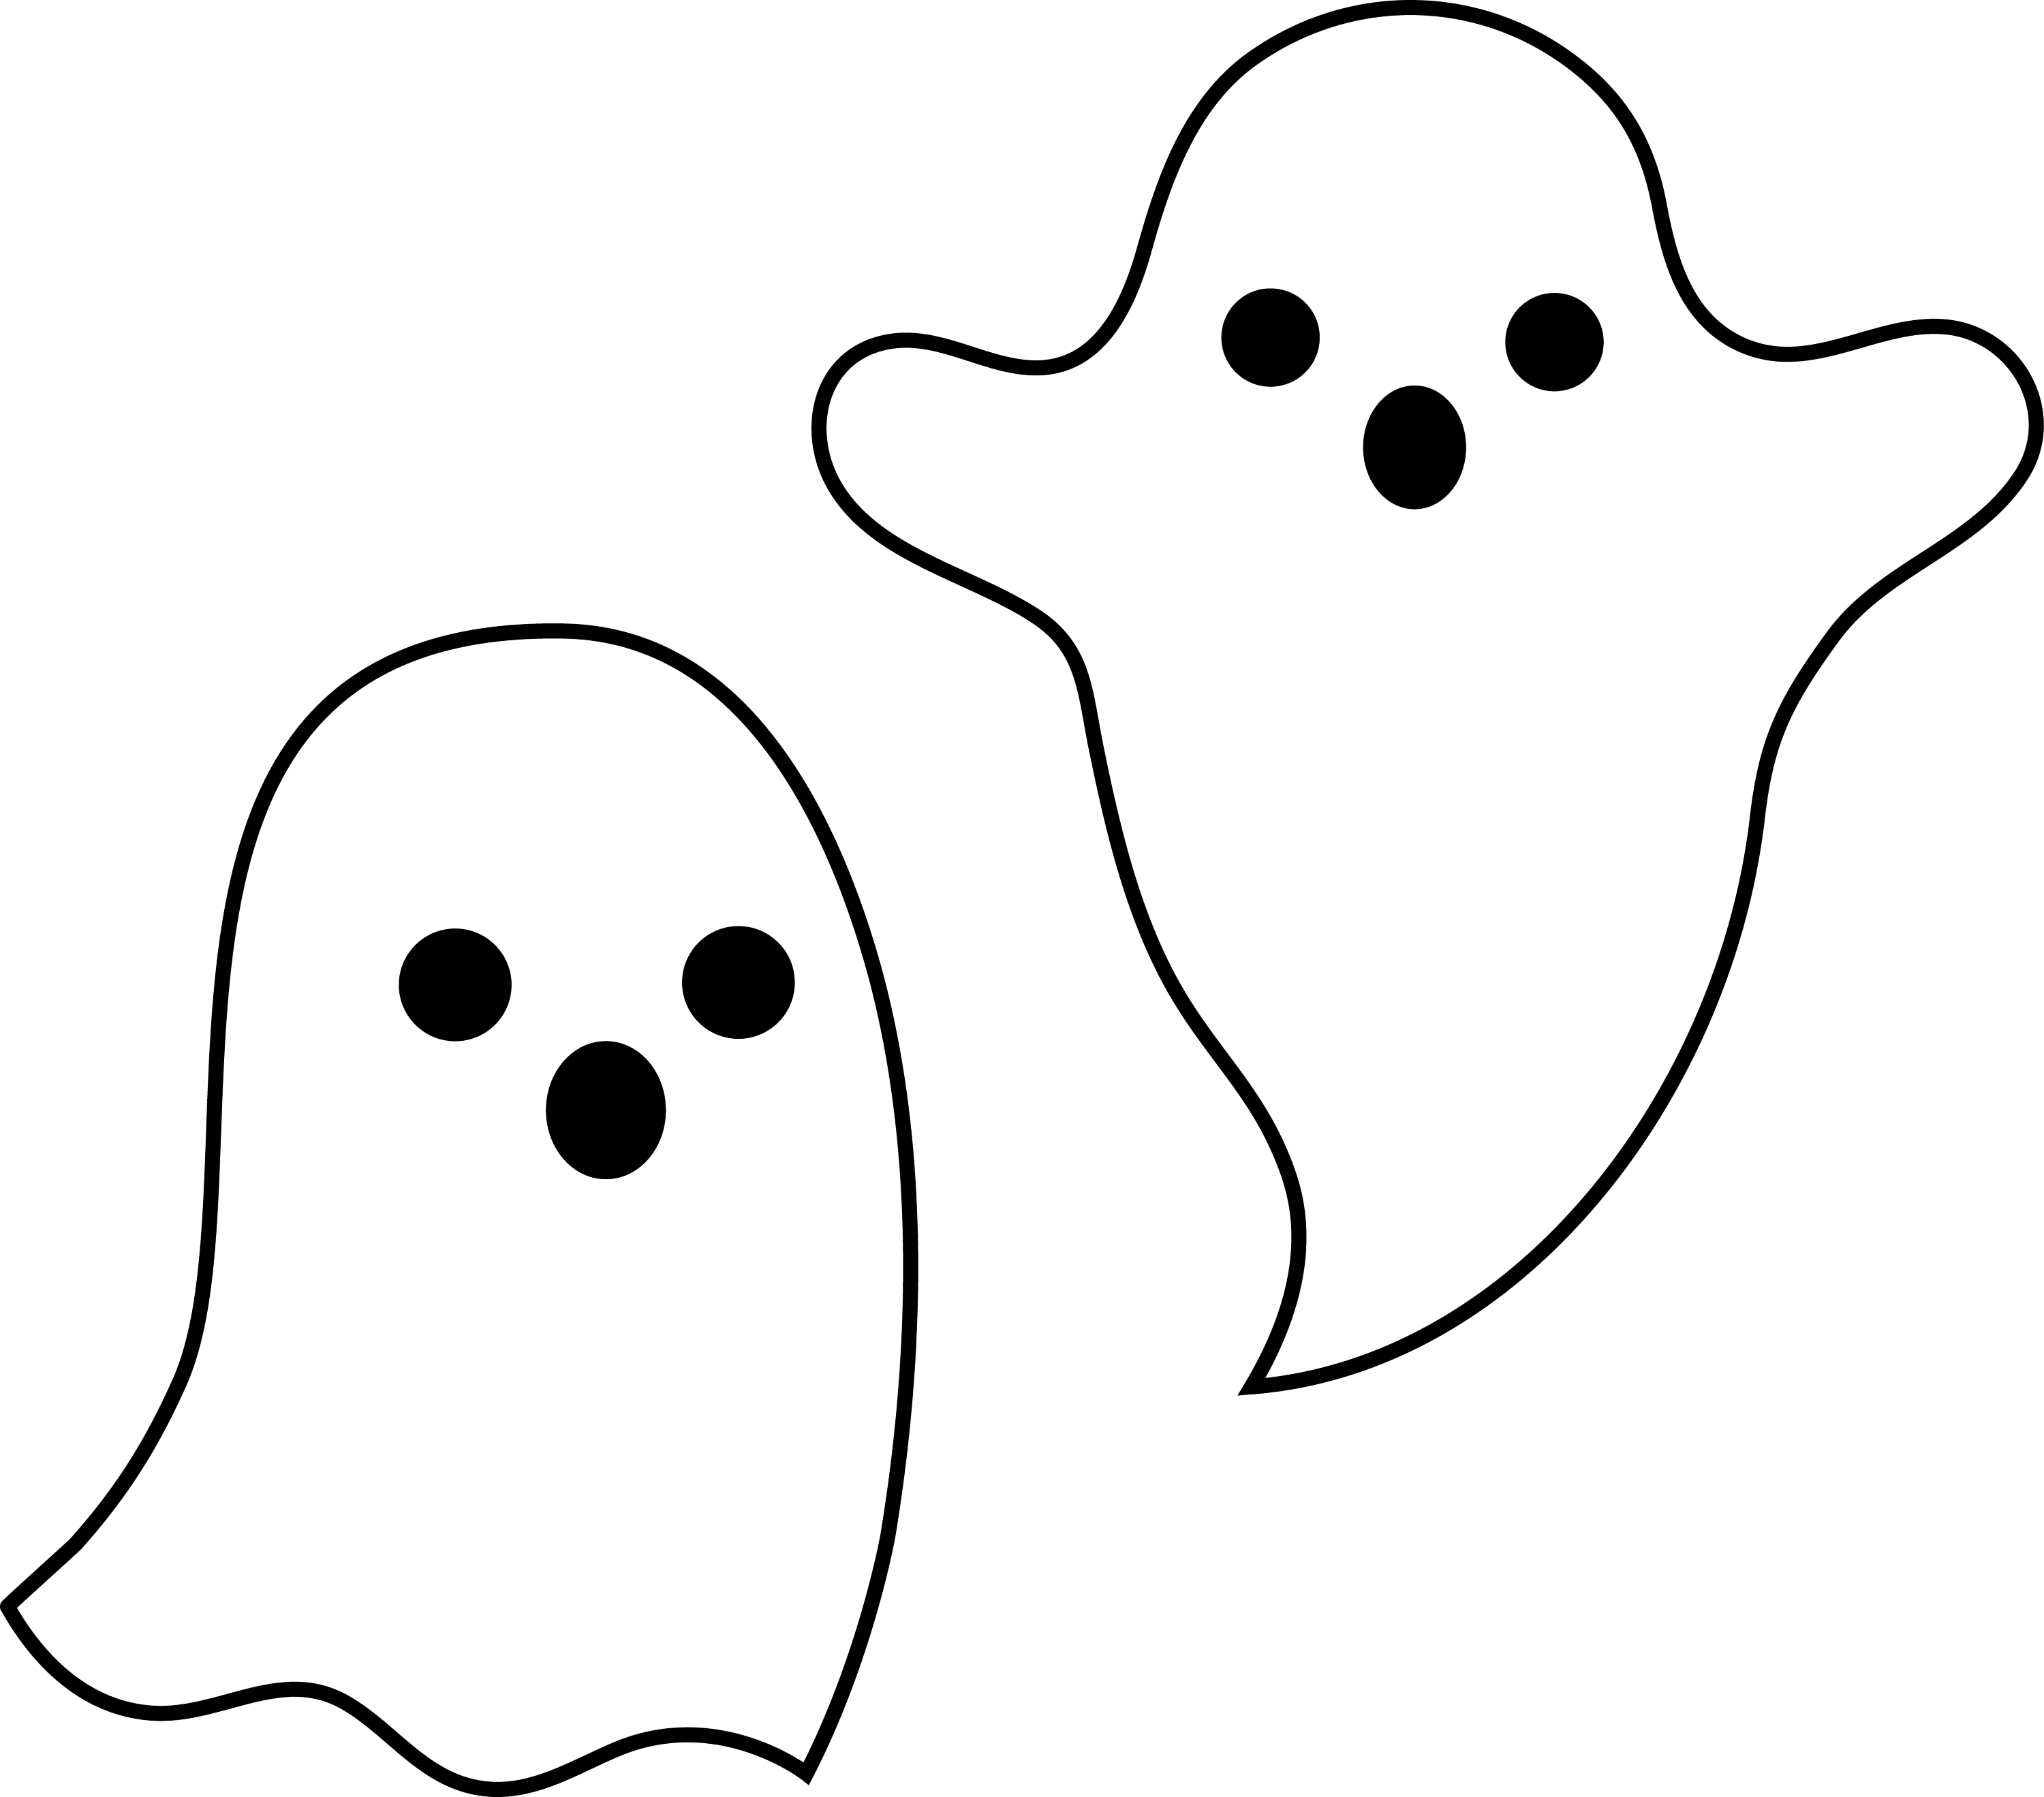 Simple Spooky Halloween Ghosts